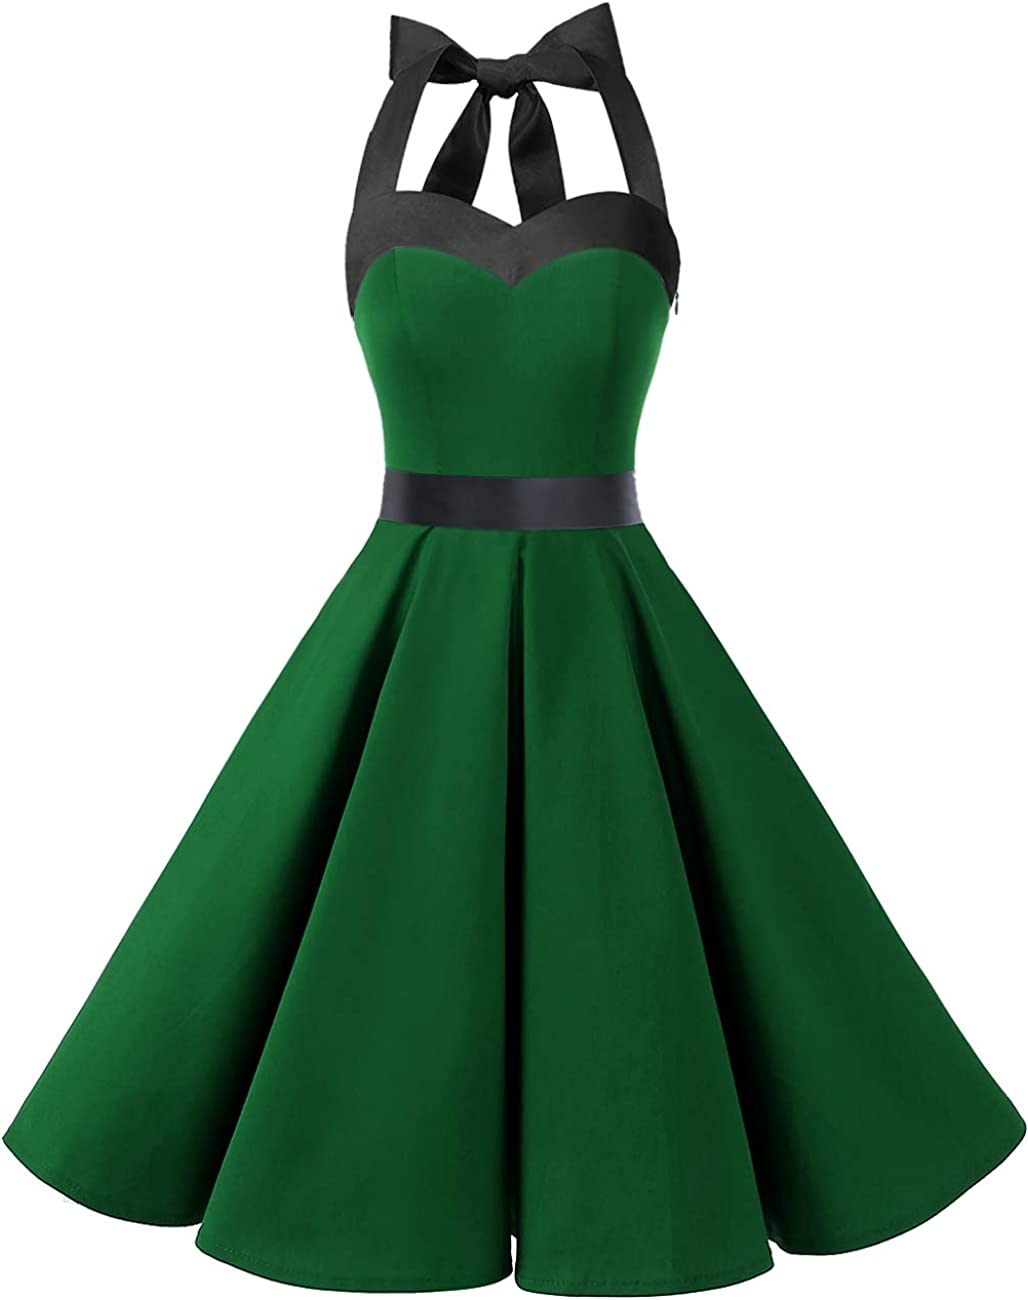 TALLA M. DRESSTELLS® Halter 50s Rockabilly Polka Dots Audrey Dress Retro Cocktail Dress Green Black M